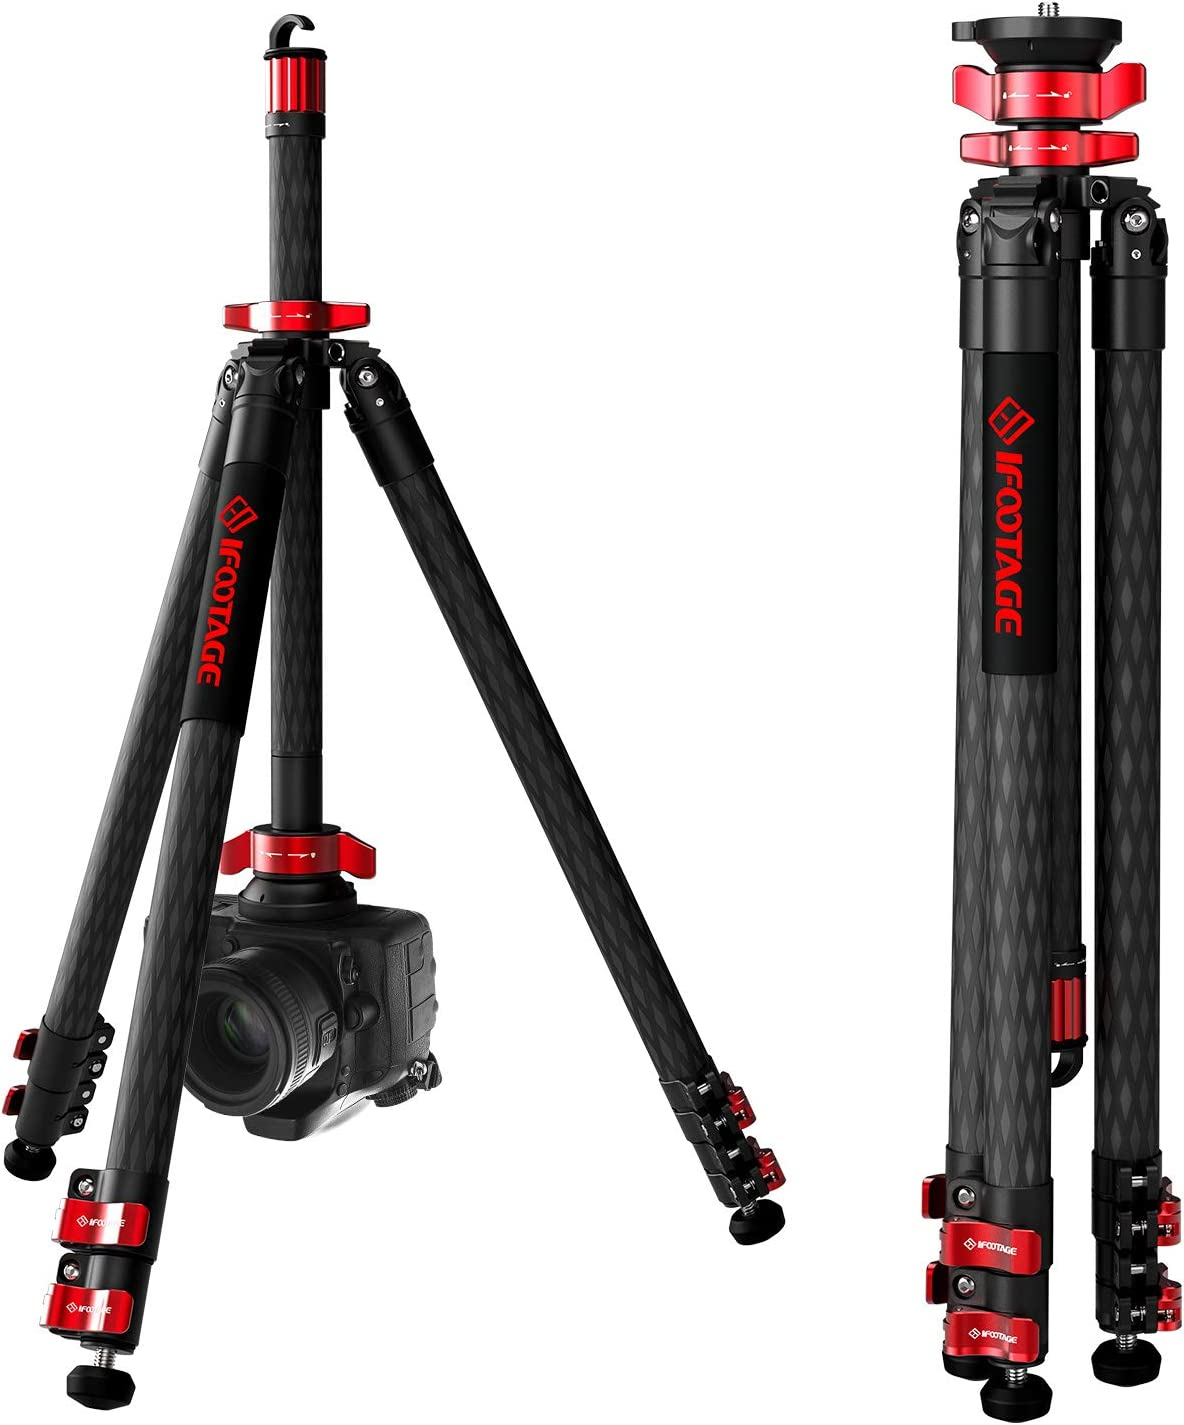 "IFOOTAGE 65"" Carbon Fiber Video Tripod, Professional Camera Tripods 3 Sections with Centre Pole, Max Load 17.6 lbs, Compatible with Canon, Nikon, Sony DSLR Camcorder Video Photography : Camera & Photo"